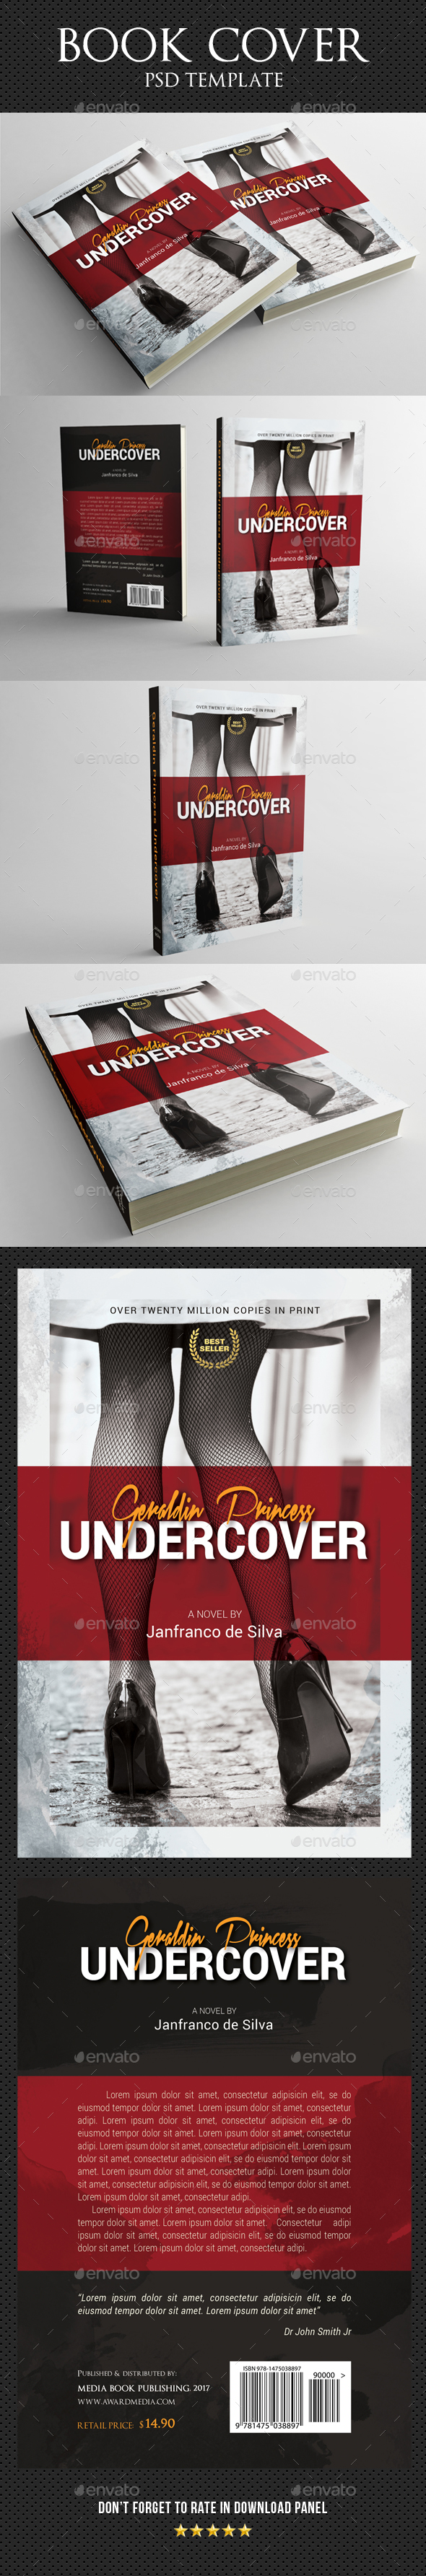 Book Cover Template 53 - Miscellaneous Print Templates